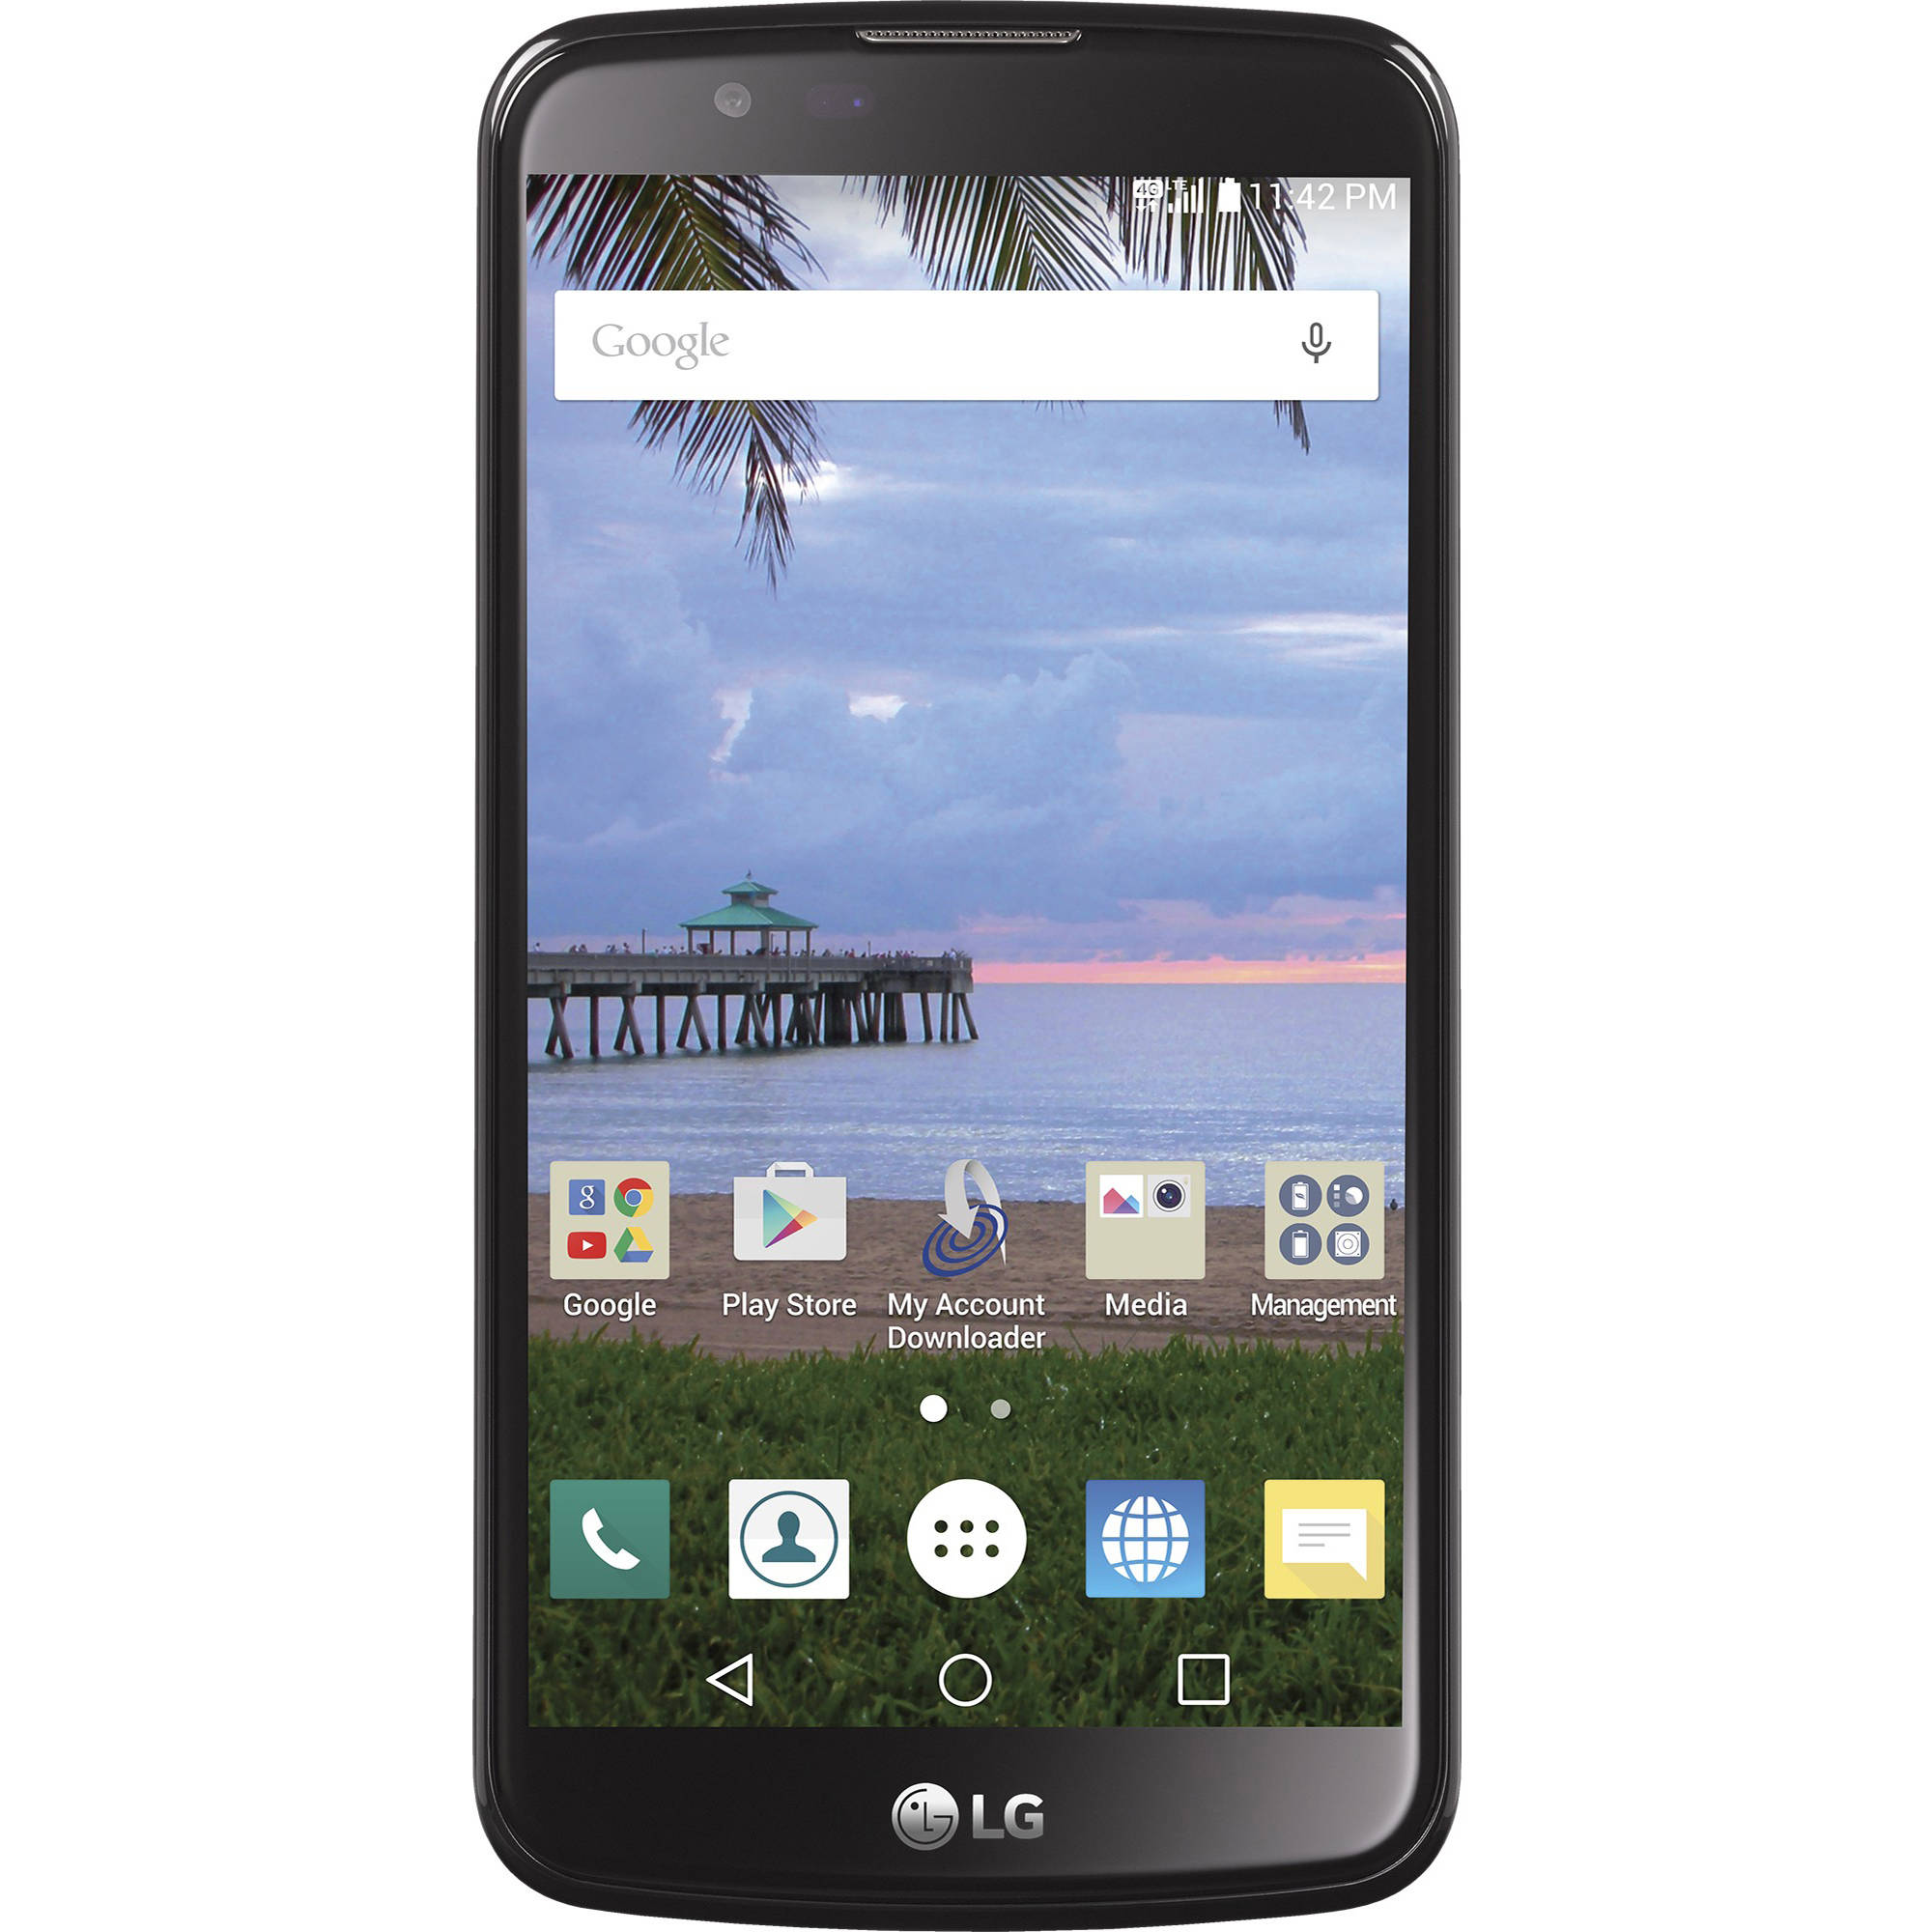 Total Wireless LG Premier 8GB Prepaid Smartphone, Black